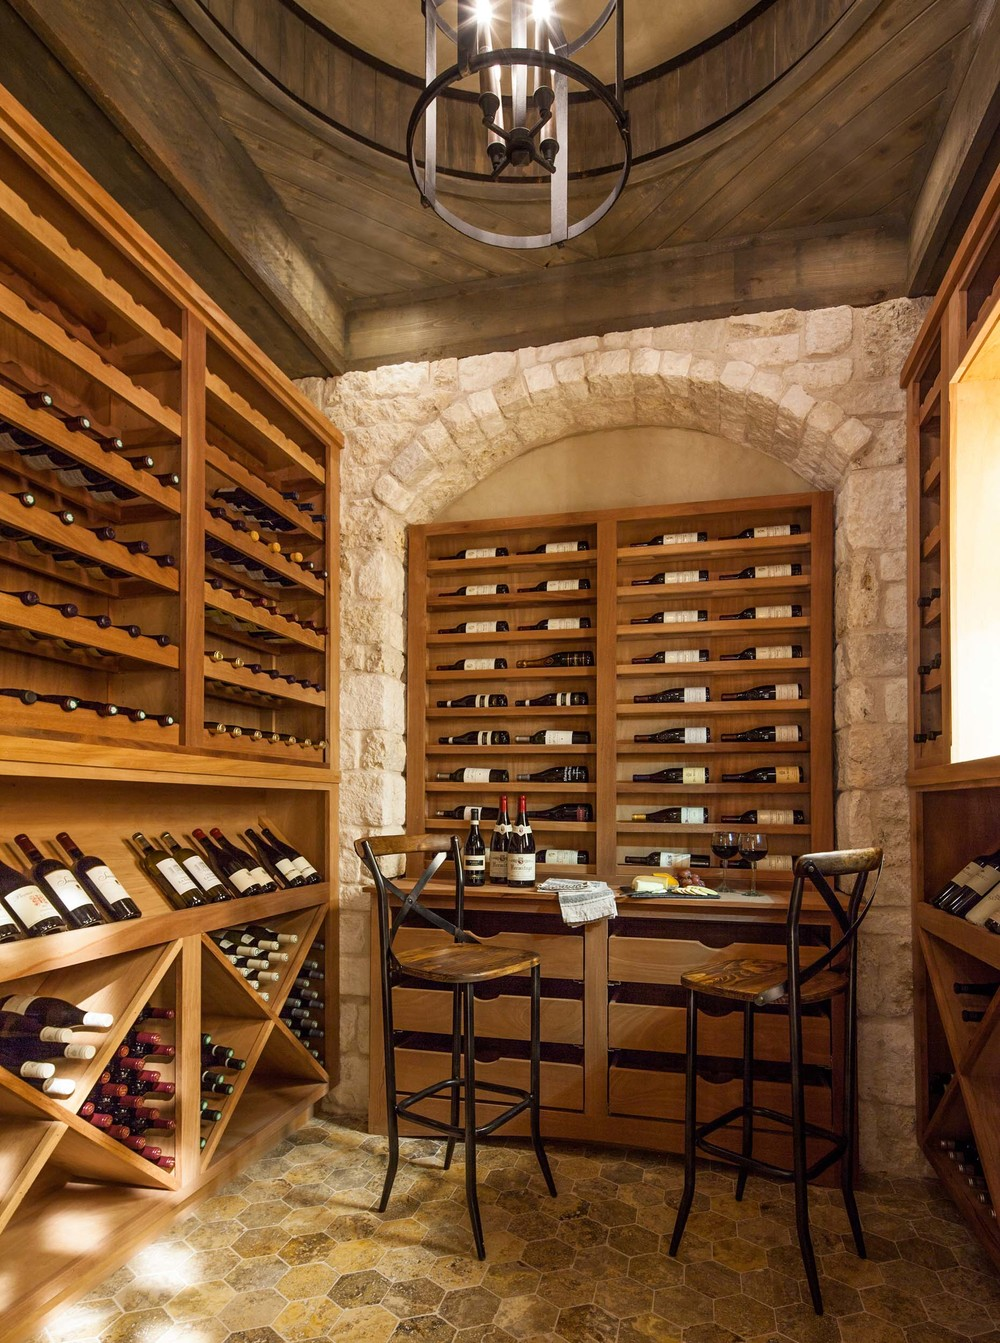 austin-house-wine-cellar-interior-design.jpg